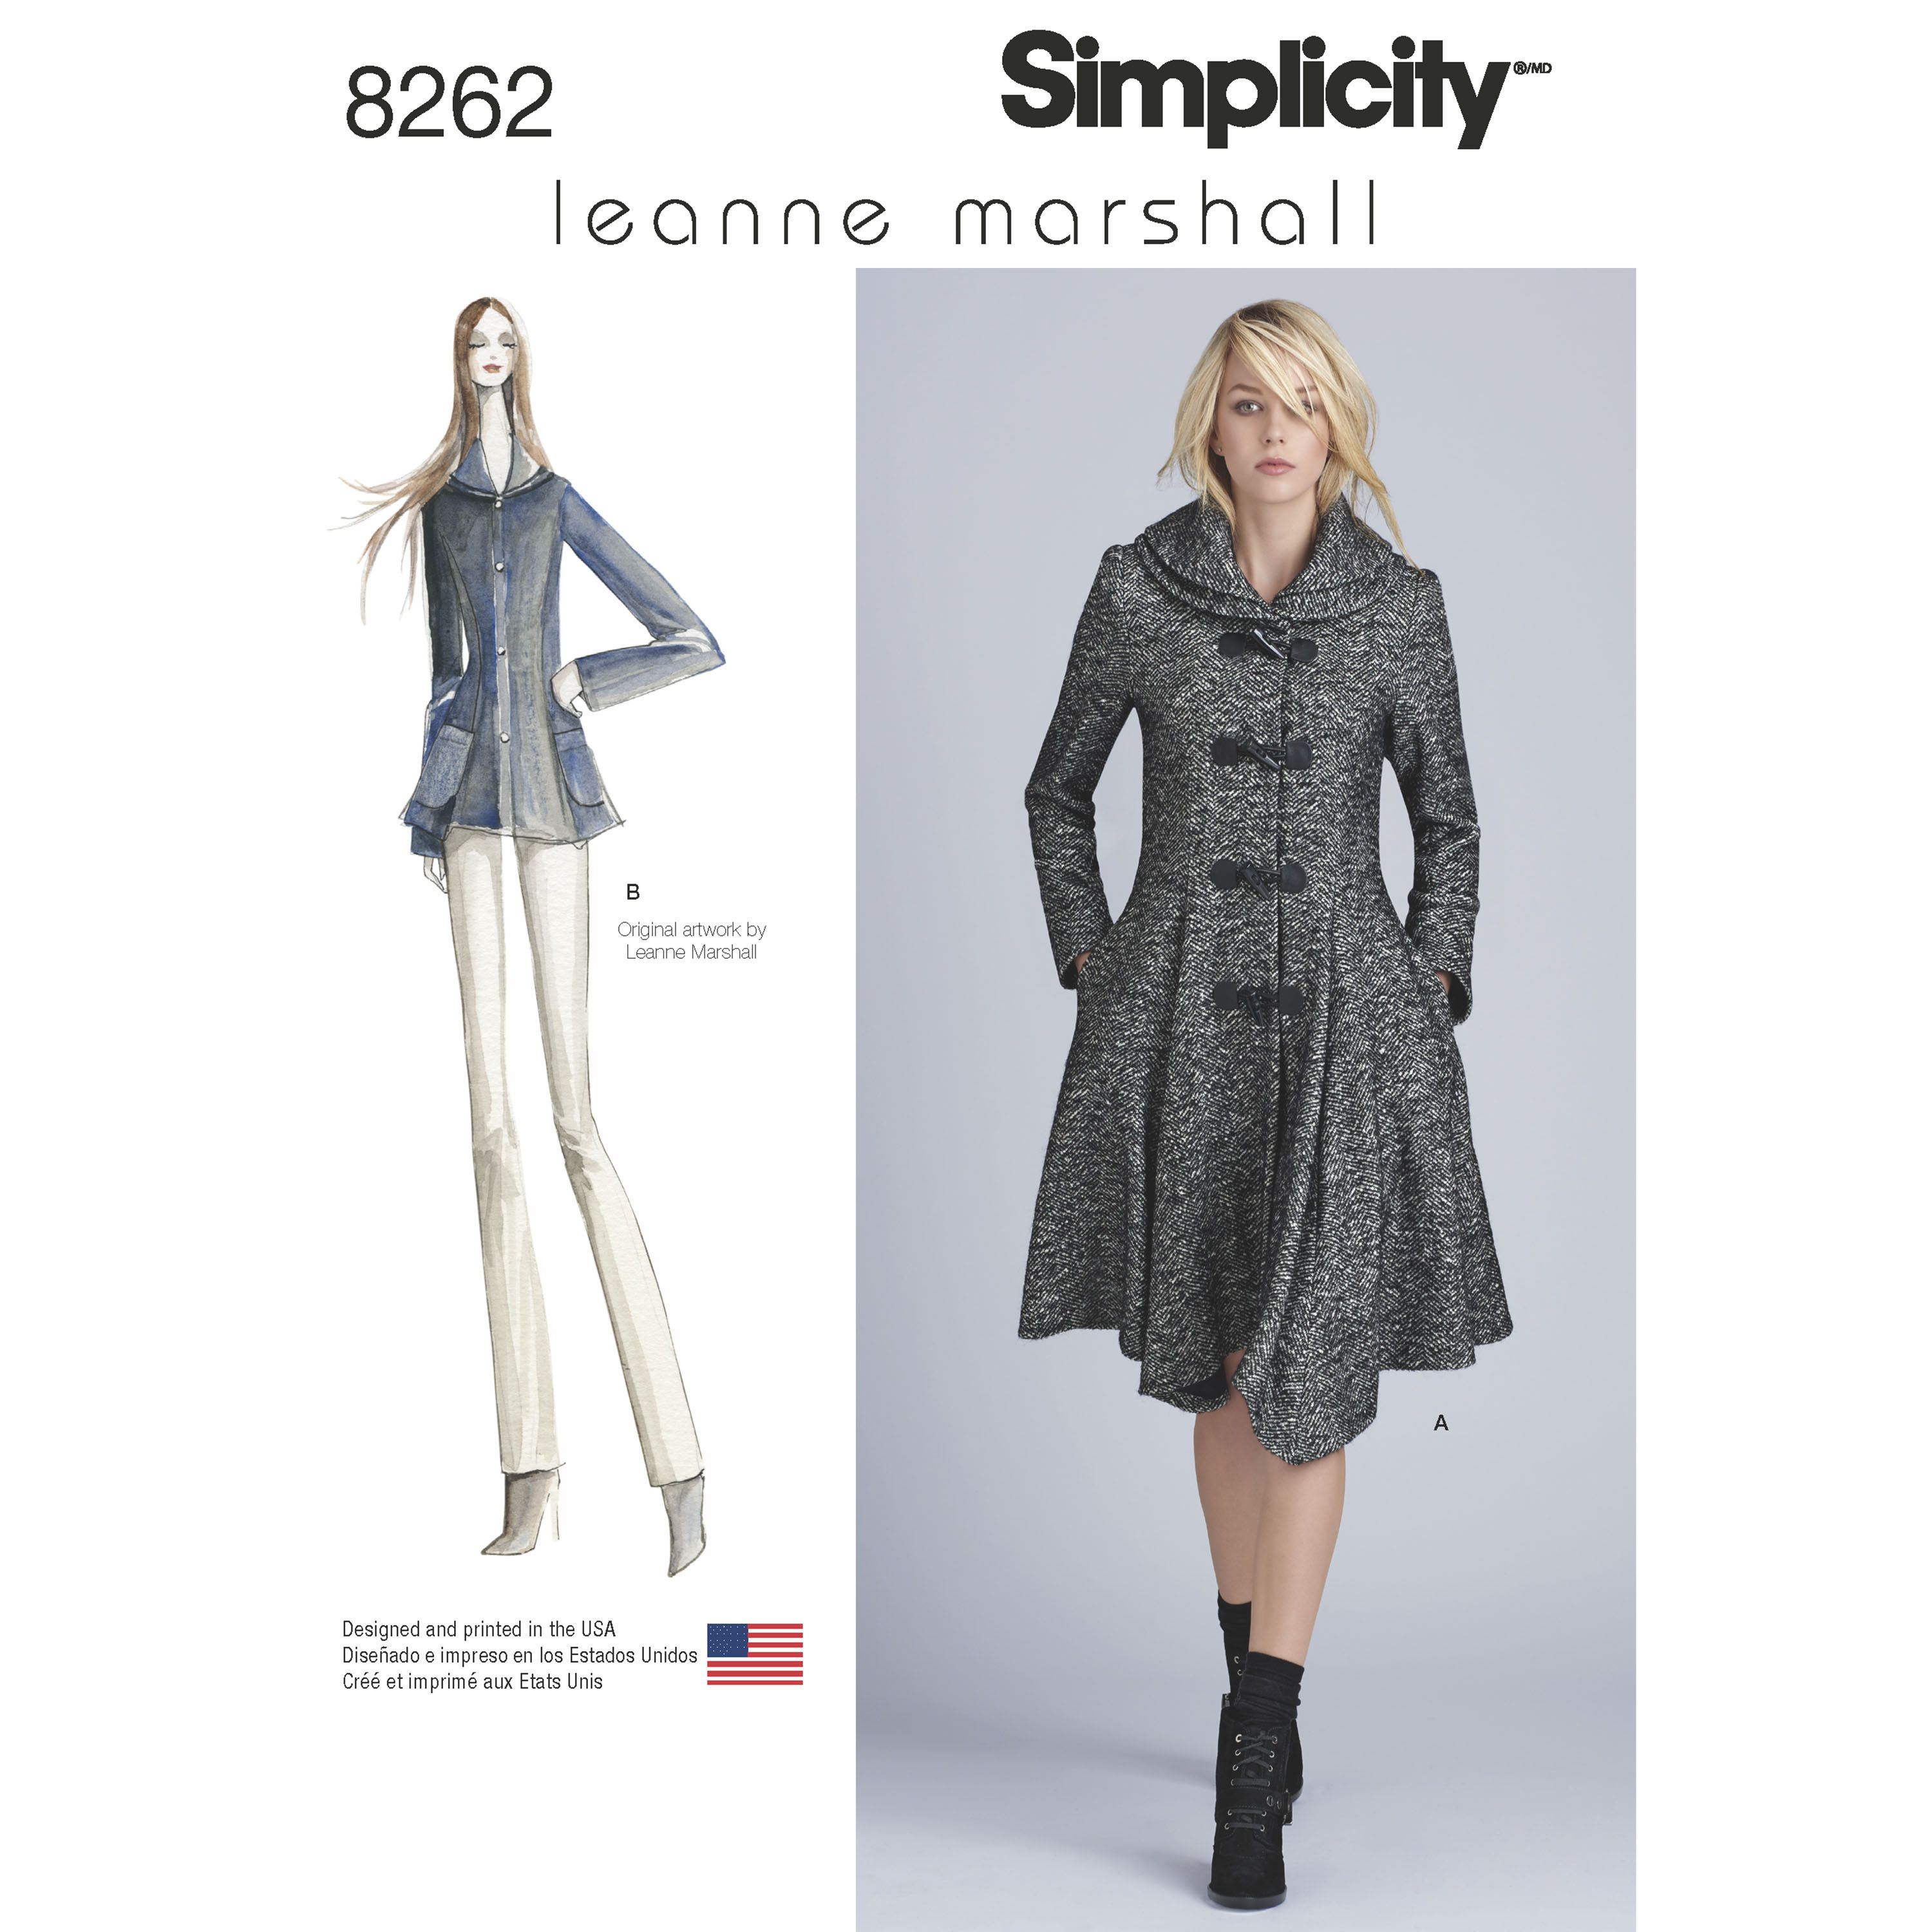 Simplicity Simplicity Pattern 8262 Leanne Marshall Coat or Jacket ...